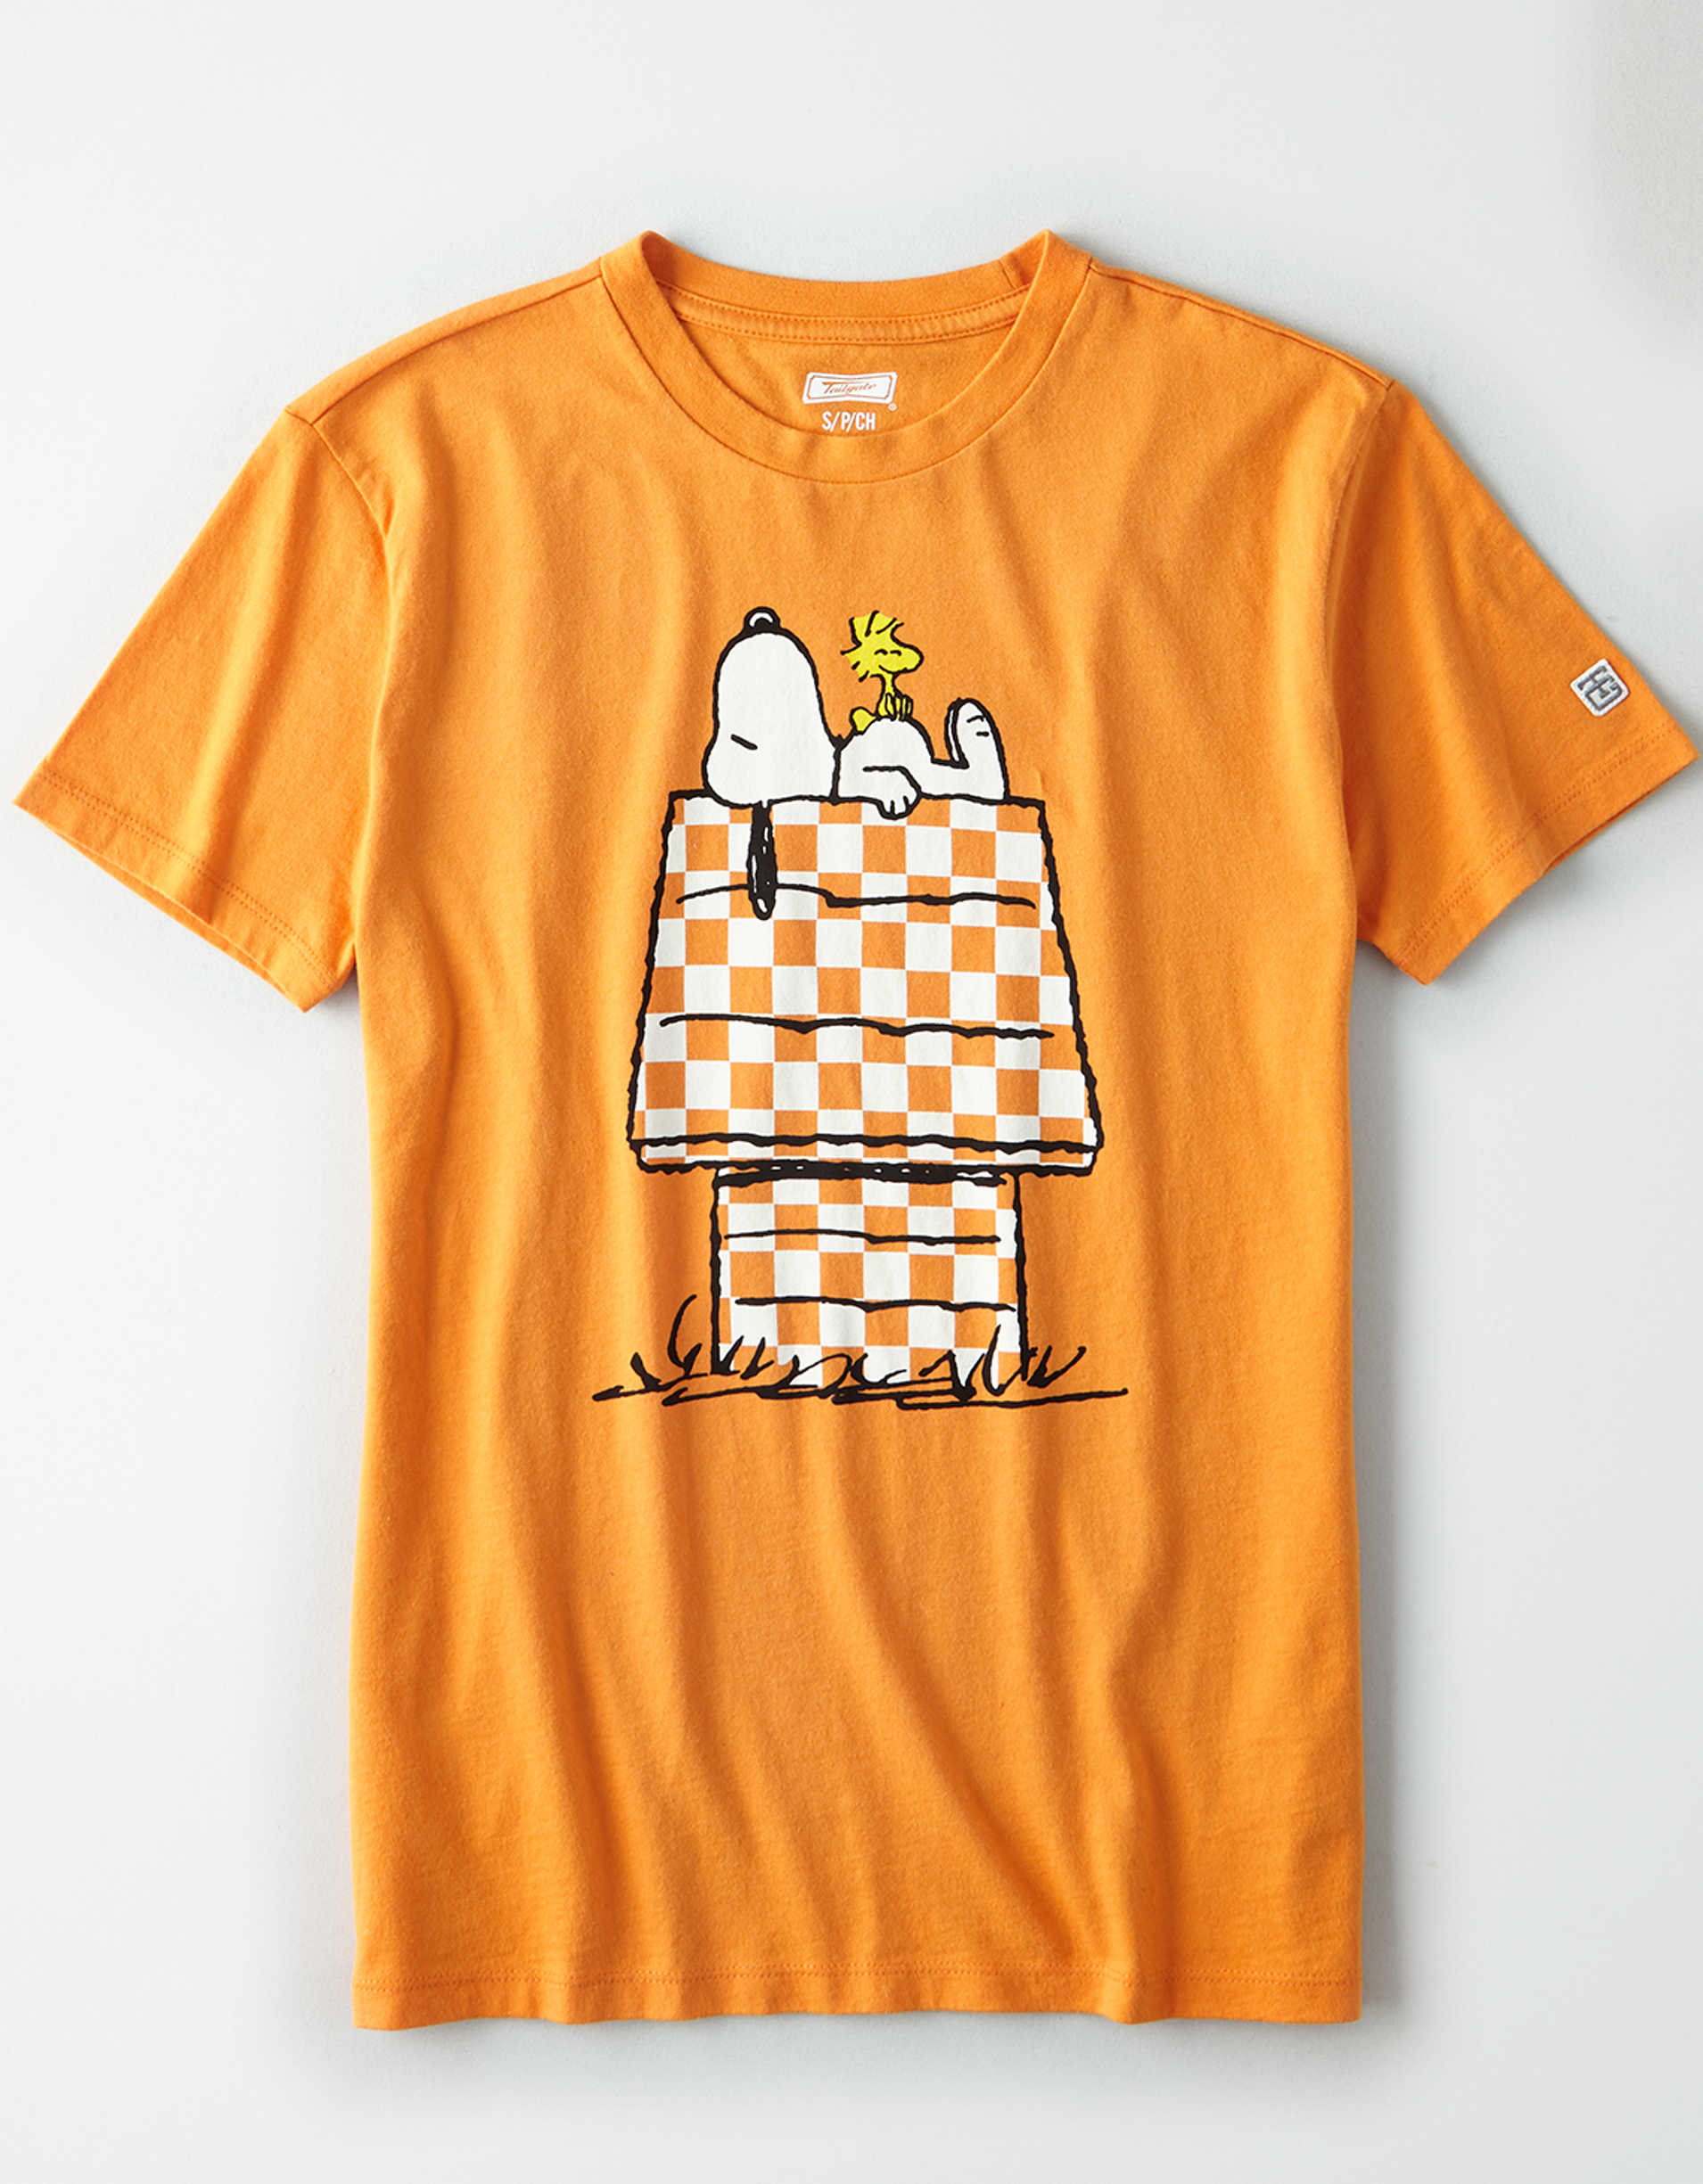 Tailgate x Peanuts Women's Tennessee Volunteers T-Shirt